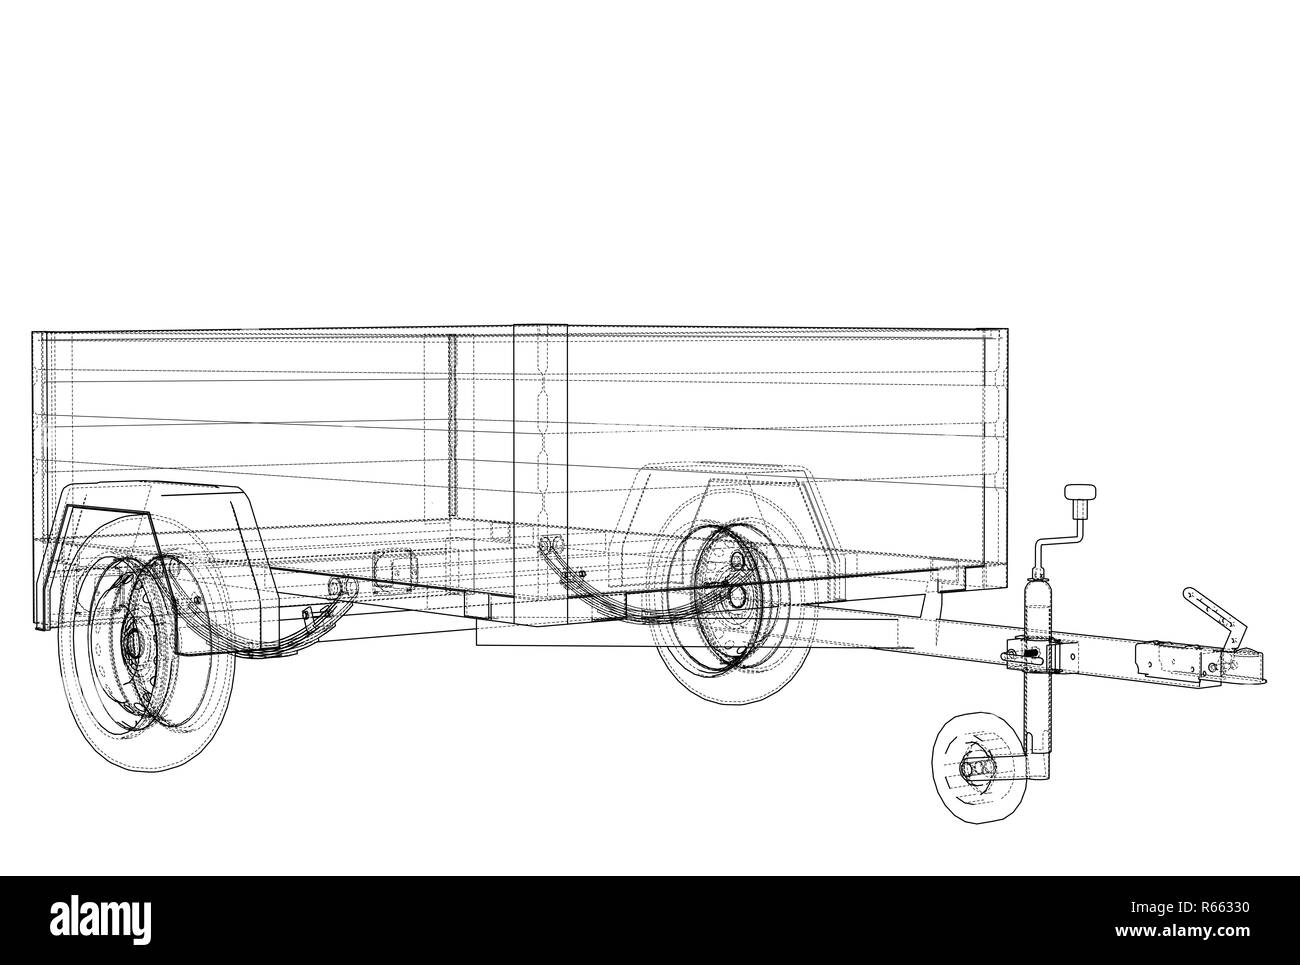 Wire Frame Model Black And White Stock Photos Images Alamy Picture Diagram Open Trailer Sketch 3d Illustration Style Image